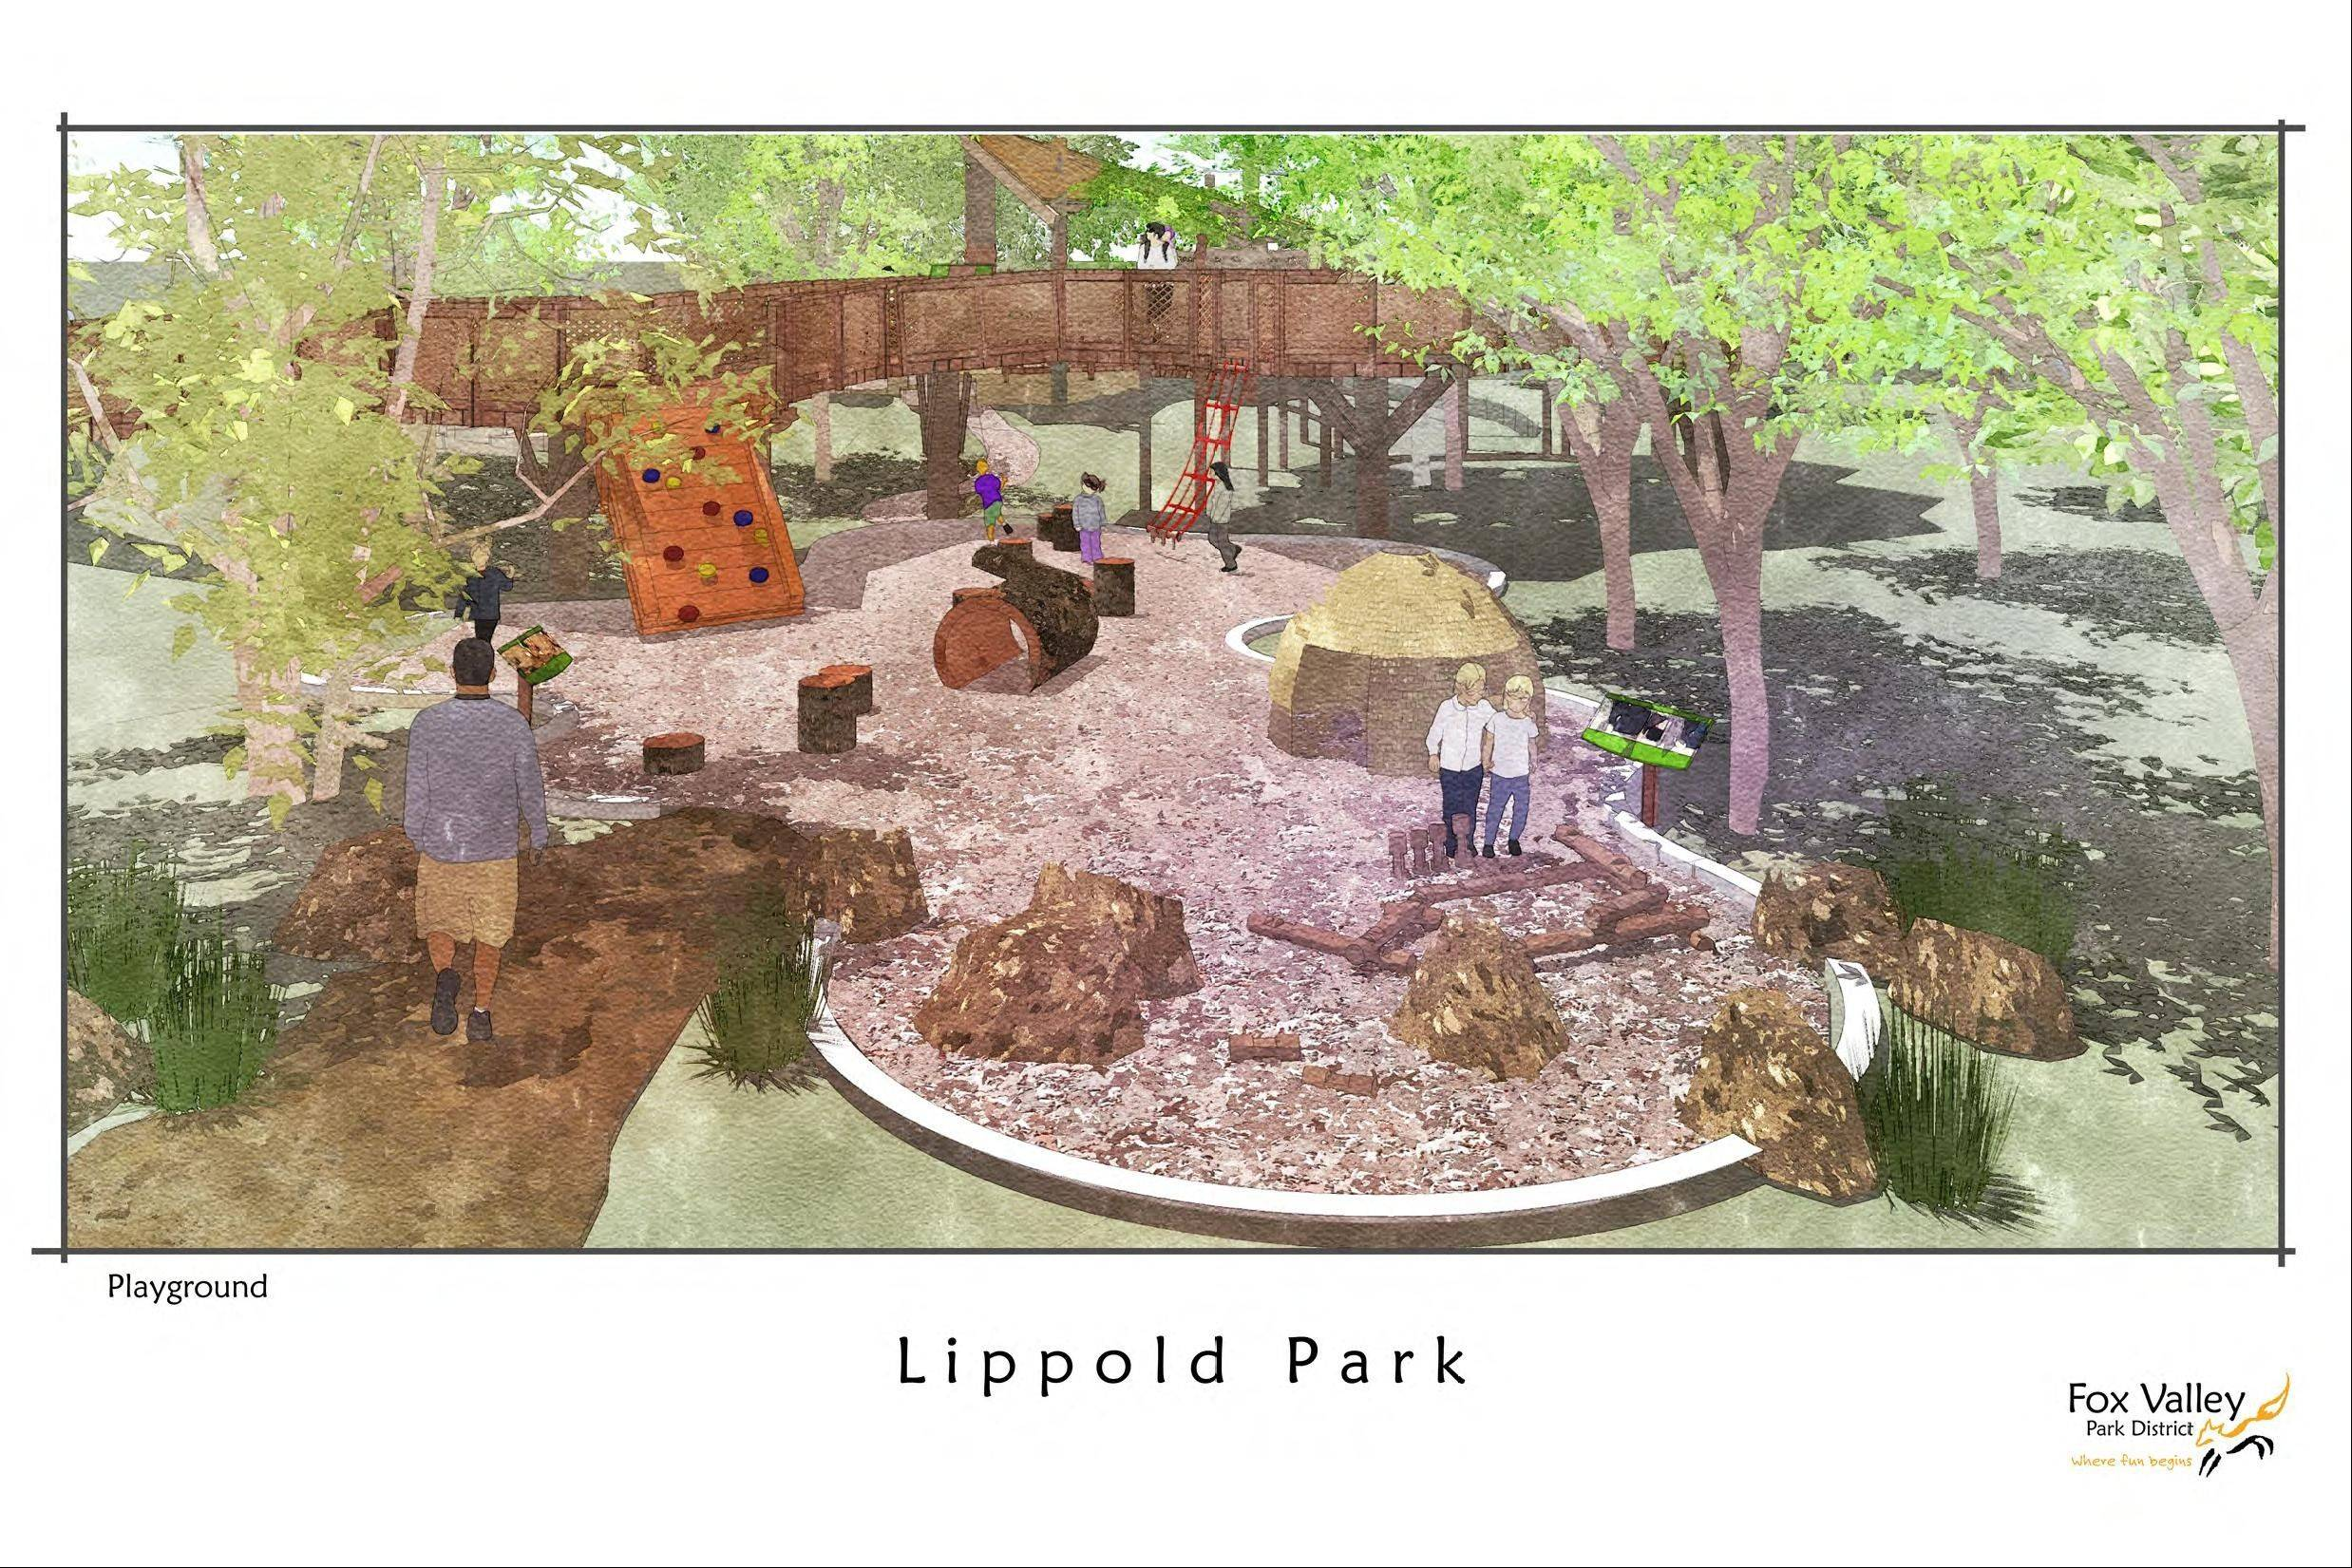 A nature-based playground area for children will be a feature of the new outdoor educational venue at Lippold Park.